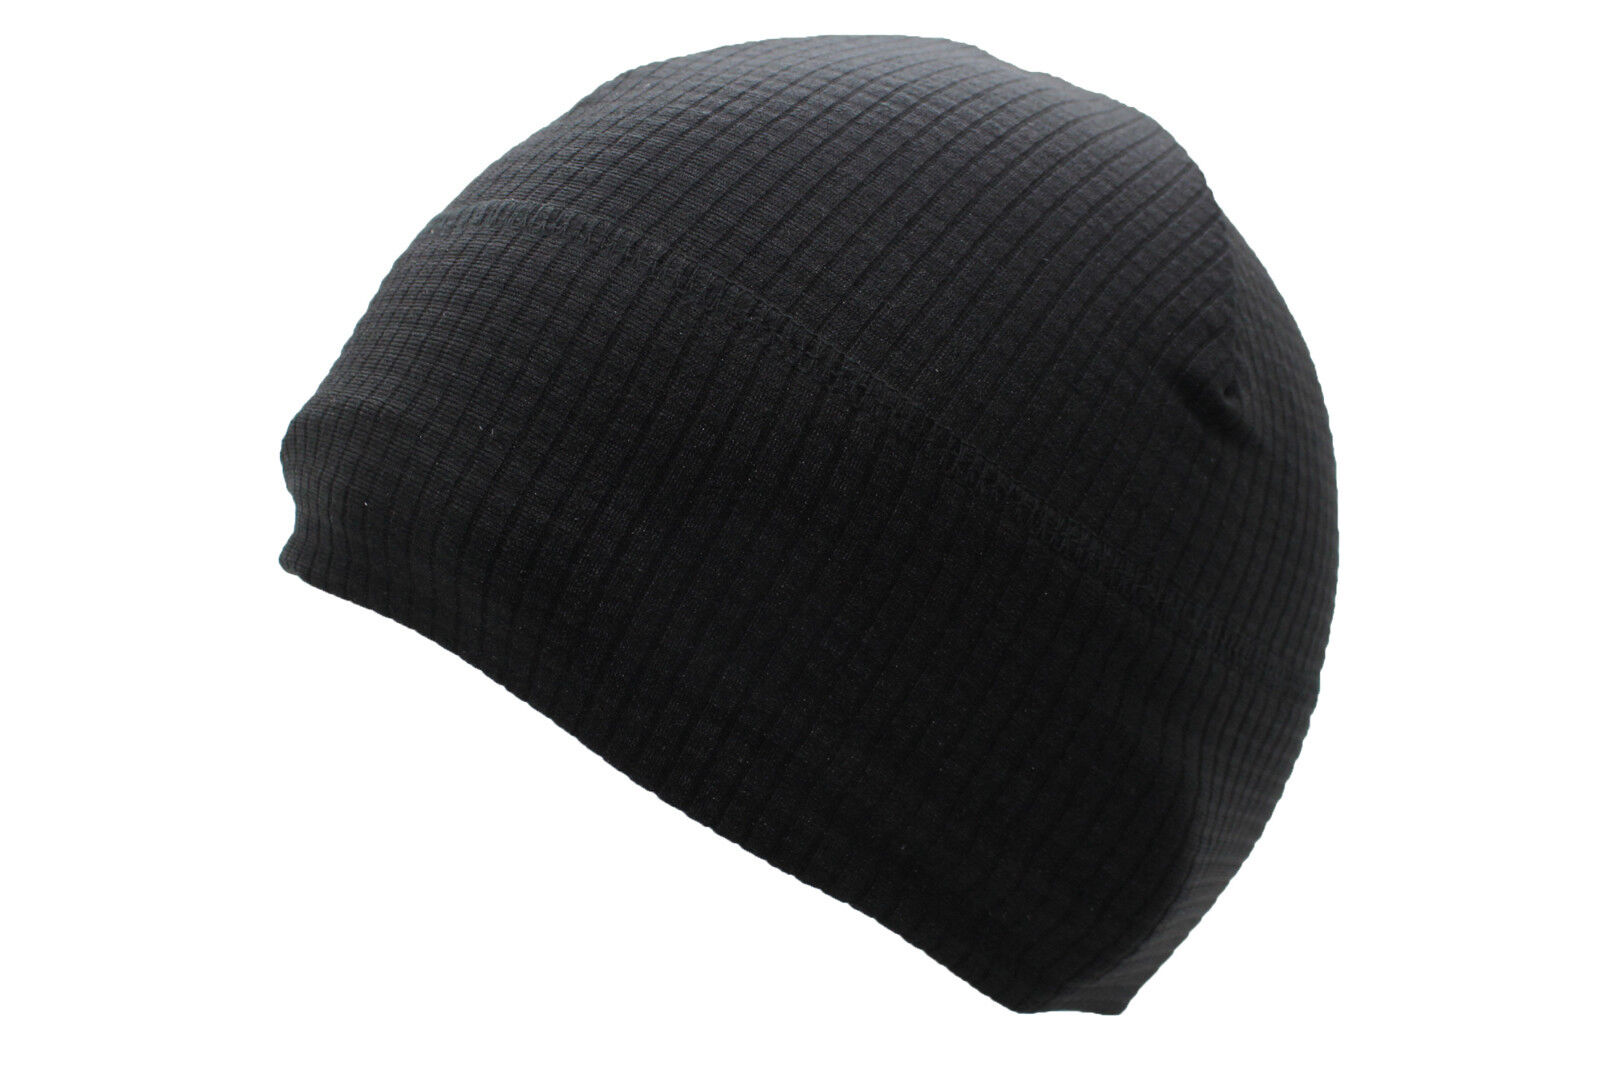 Details about Quick Dry Beanie Hat Outdoor Elasticated Sport Sweat Cap